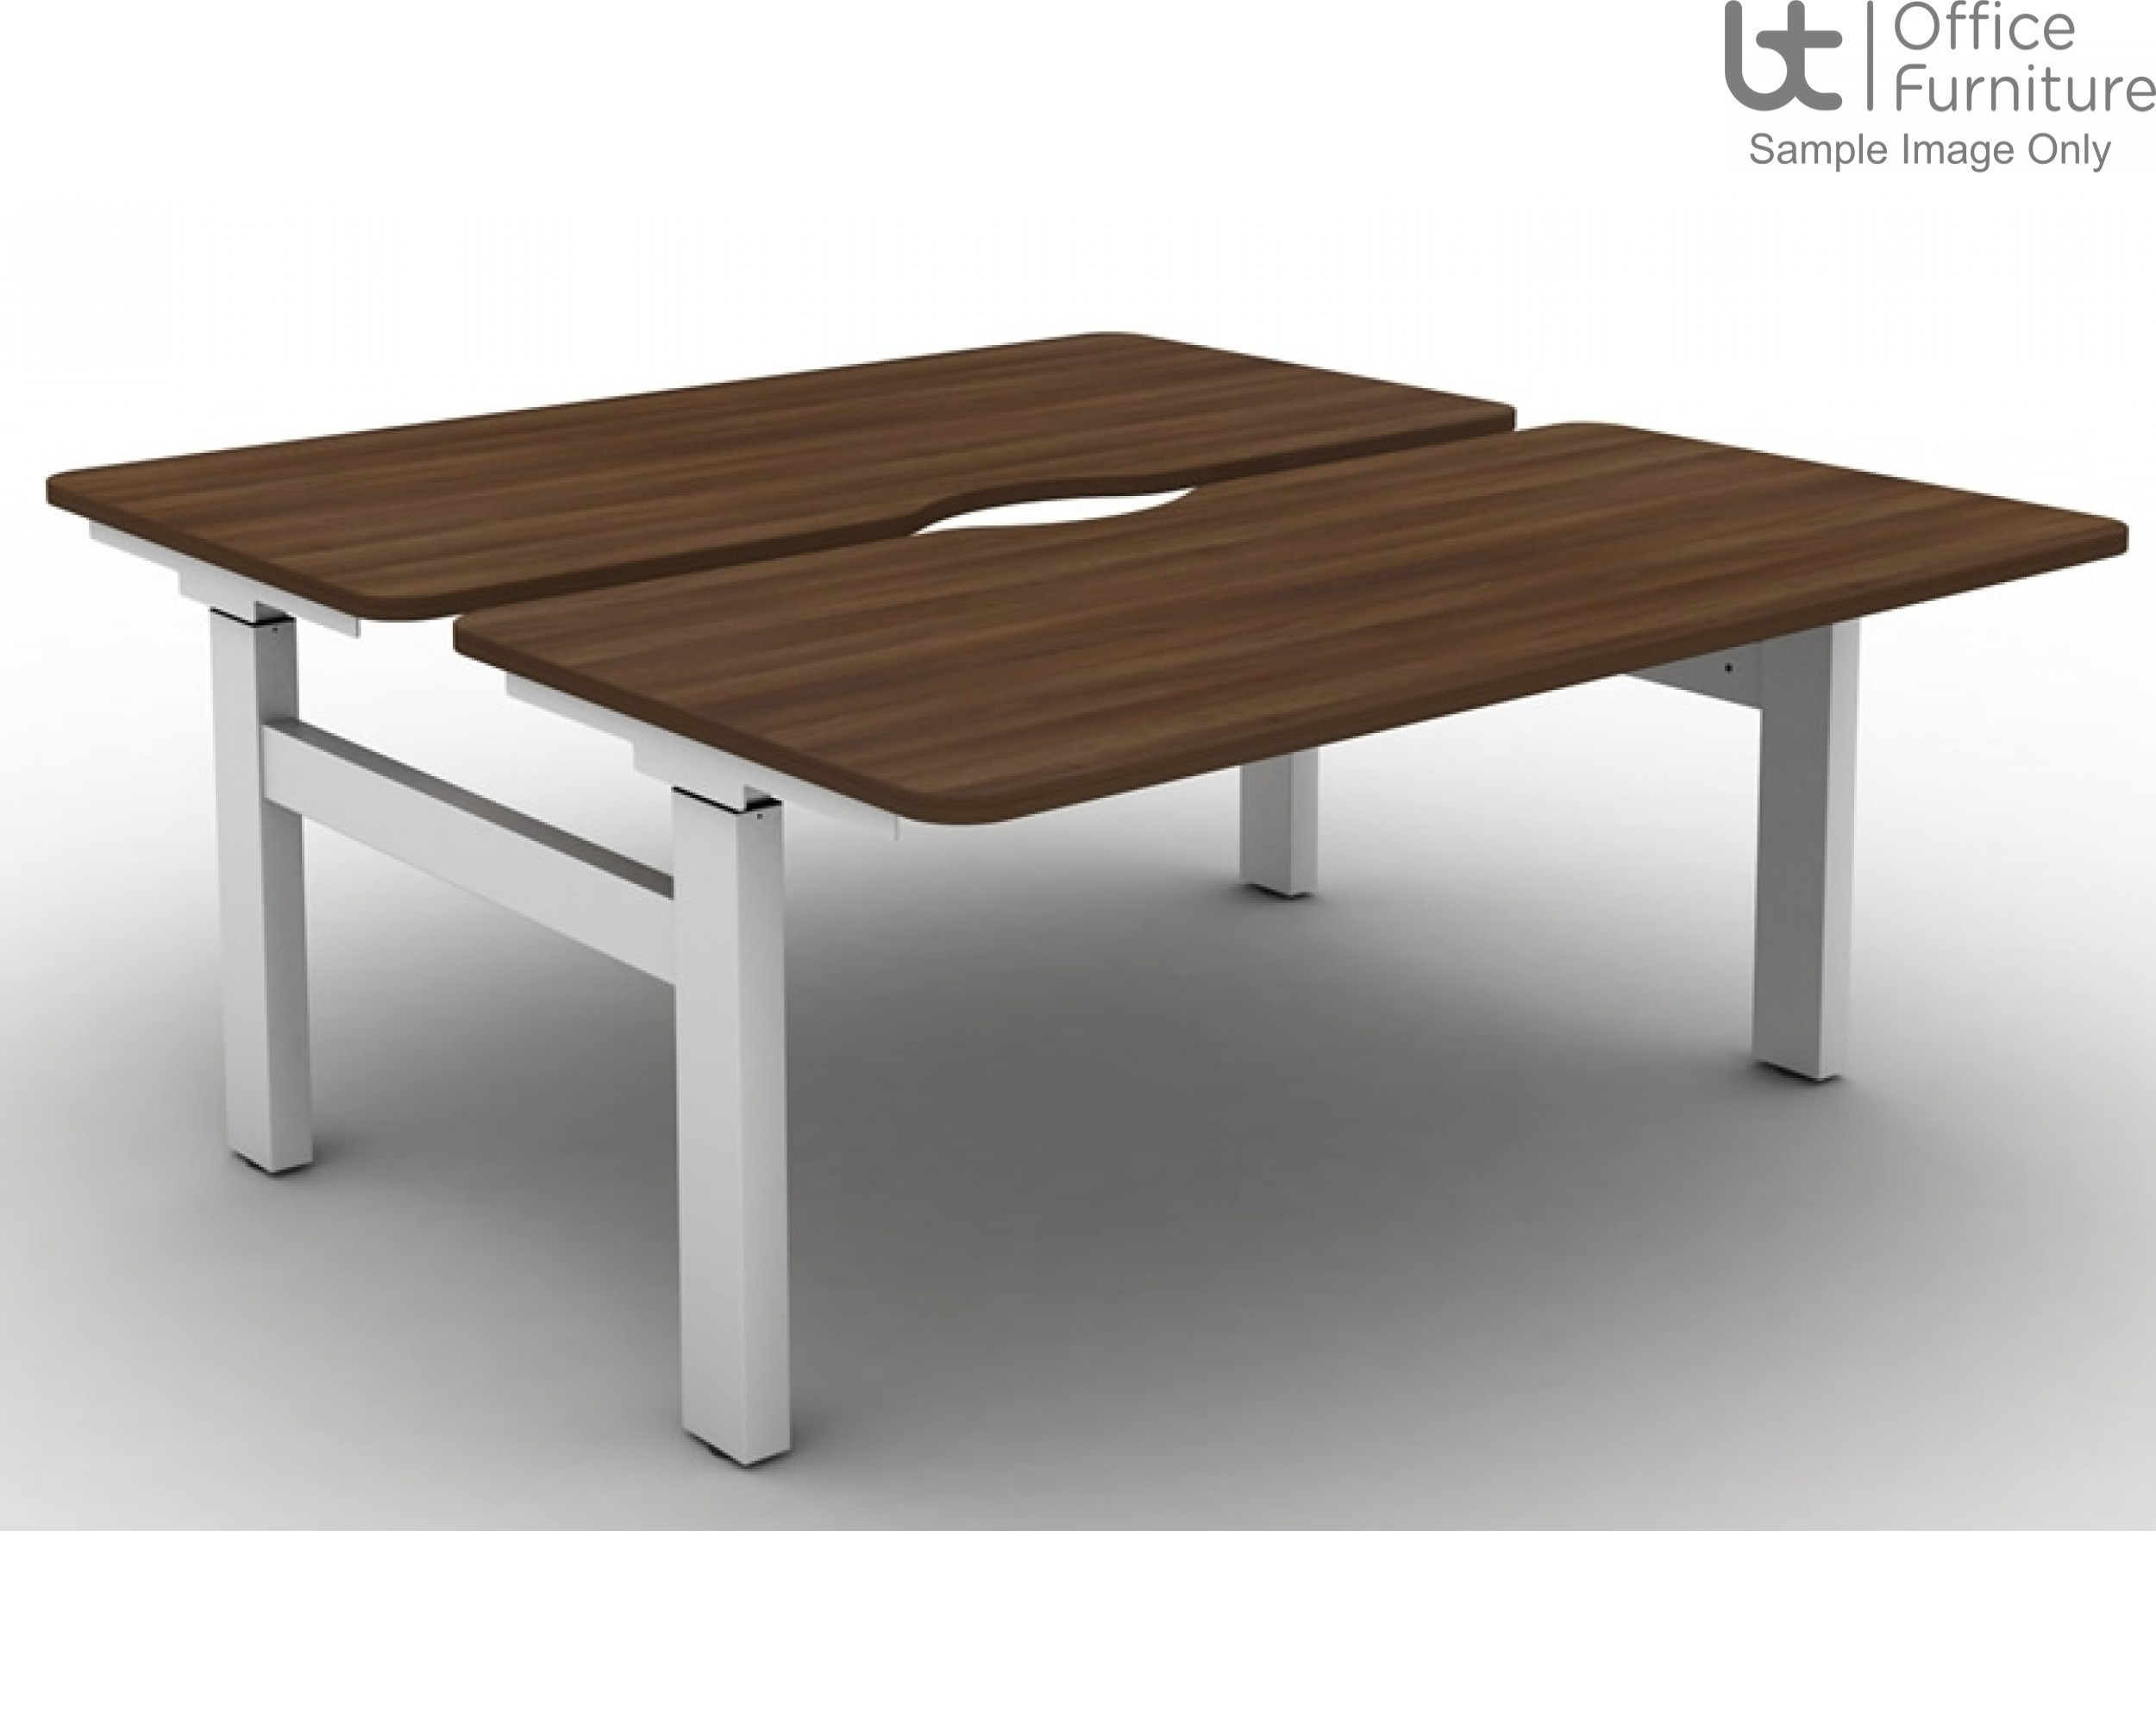 Move Set and Forget Height Adjustable Back To Back Desks with Scallop & Round Corners